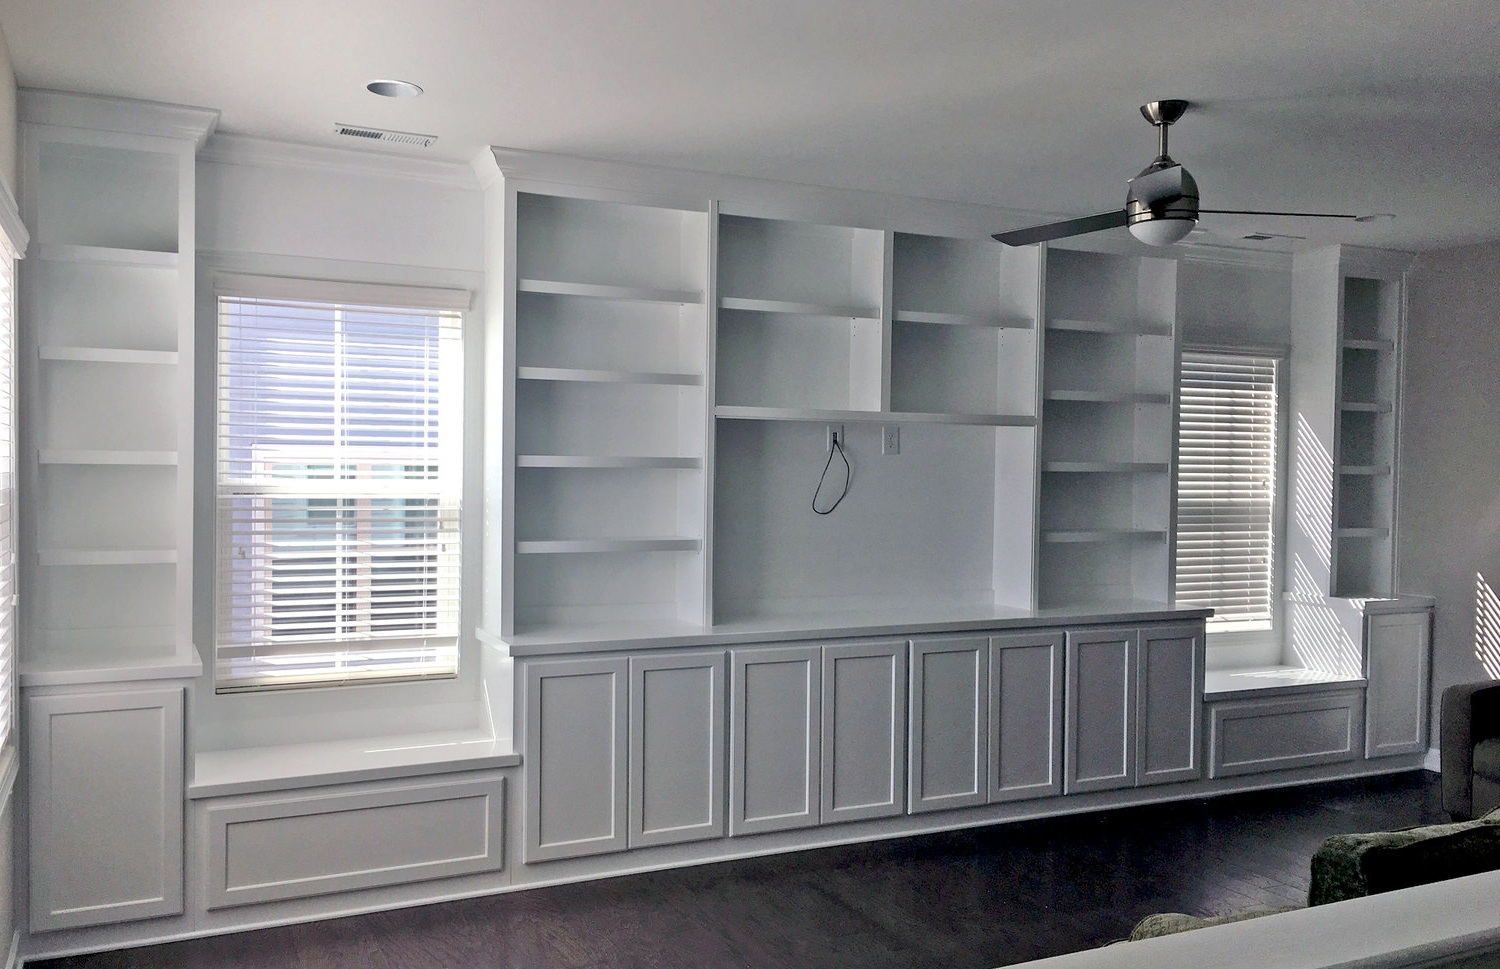 Built-In with Shaker Doors & Drawers, Adjustable Shelves, TV Opening, and Crown